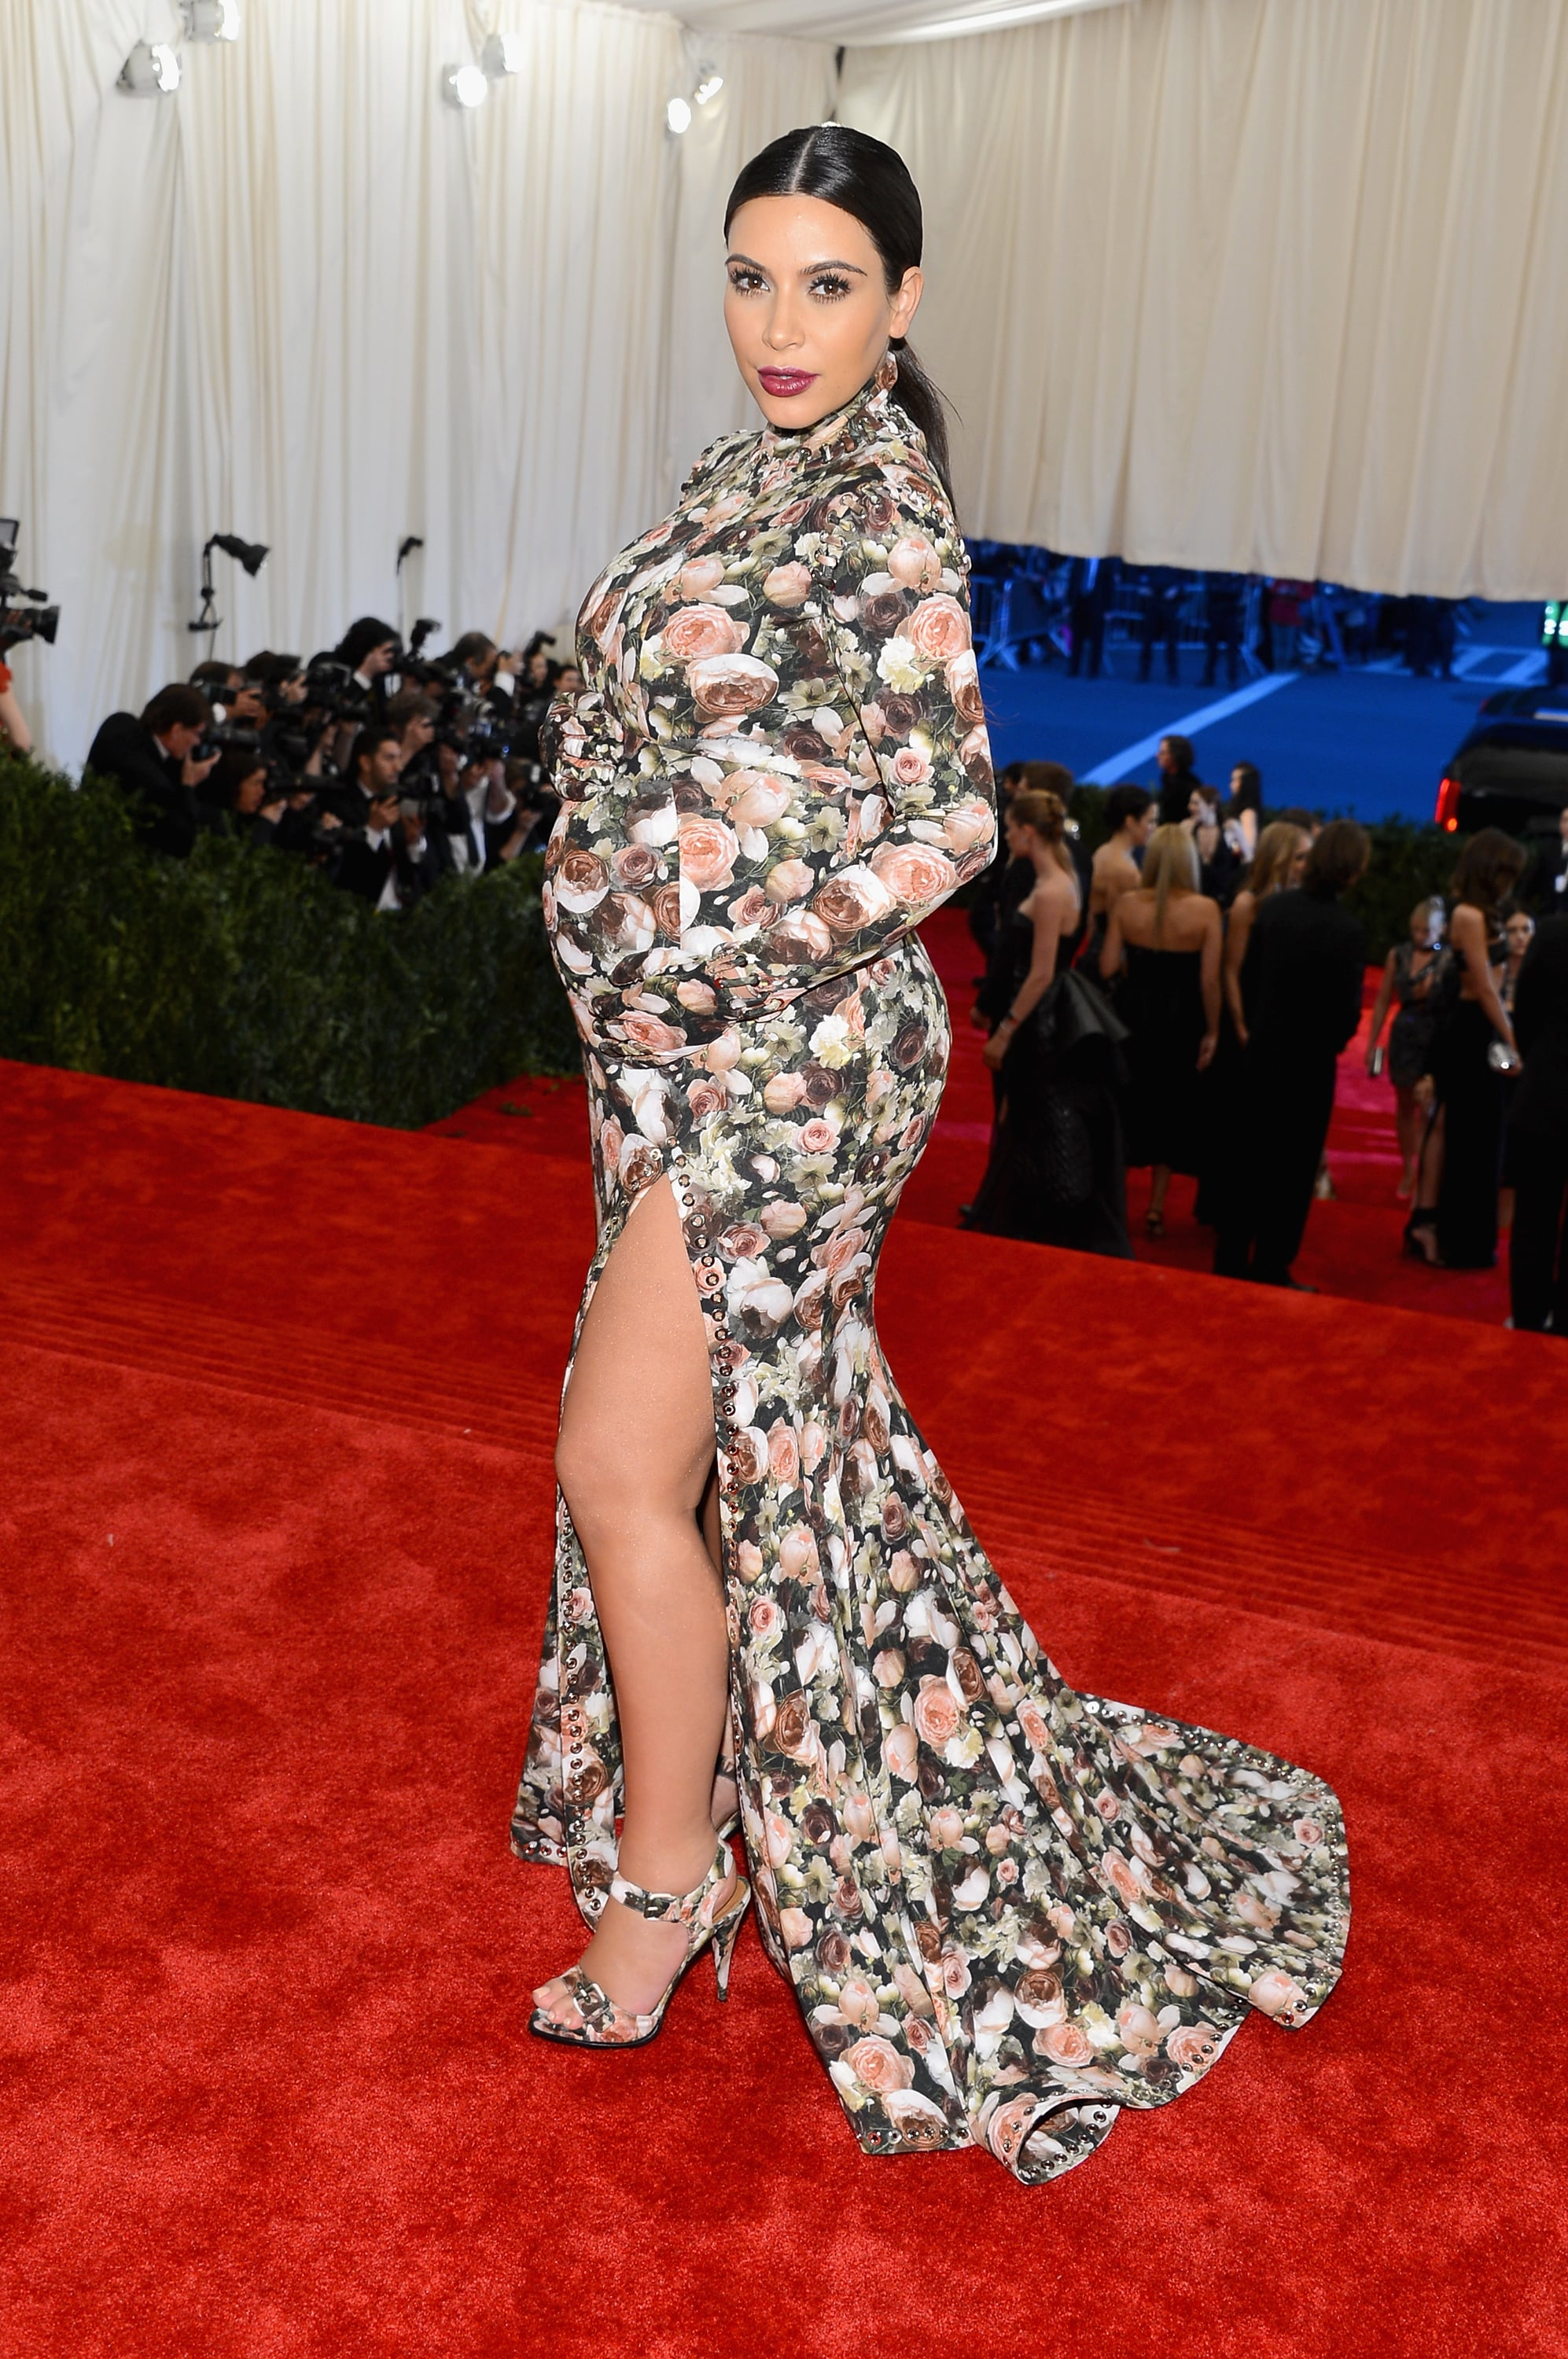 NEW YORK, NY - MAY 06:  Kim Kardashian attends the Costume Institute Gala for the